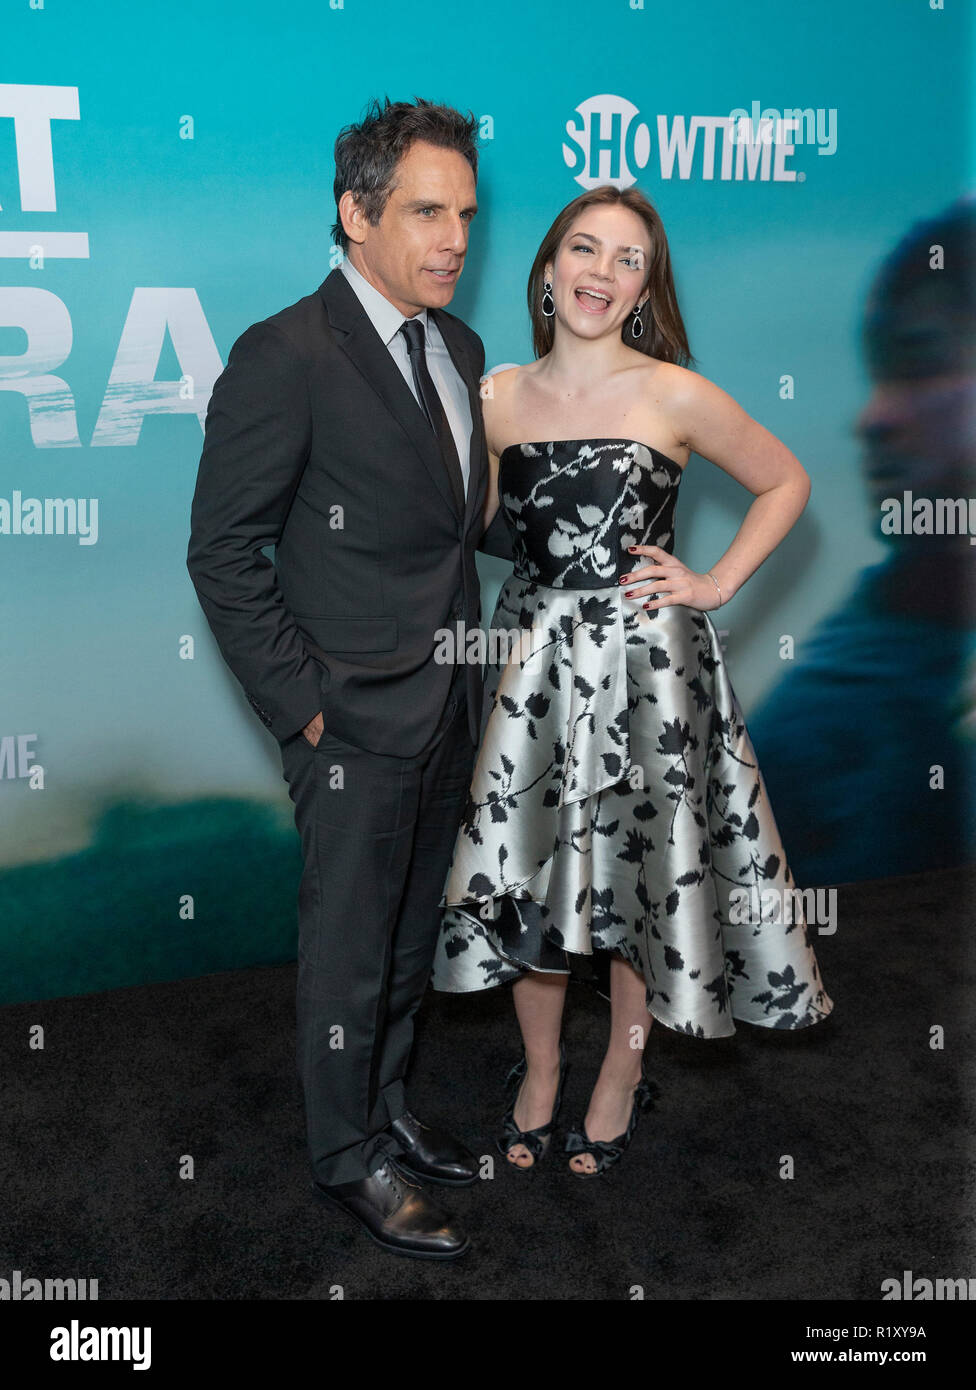 Nueva York, Estados Unidos. 14 Nov, 2018. Ben Stiller y Ella Olivia Stiller asistir al estreno de la serie de Showtime de escapar a Dannemora en Alice Tully Hall en el Lincoln Center. Crédito: Lev Radin/Pacific Press/Alamy Live News Imagen De Stock